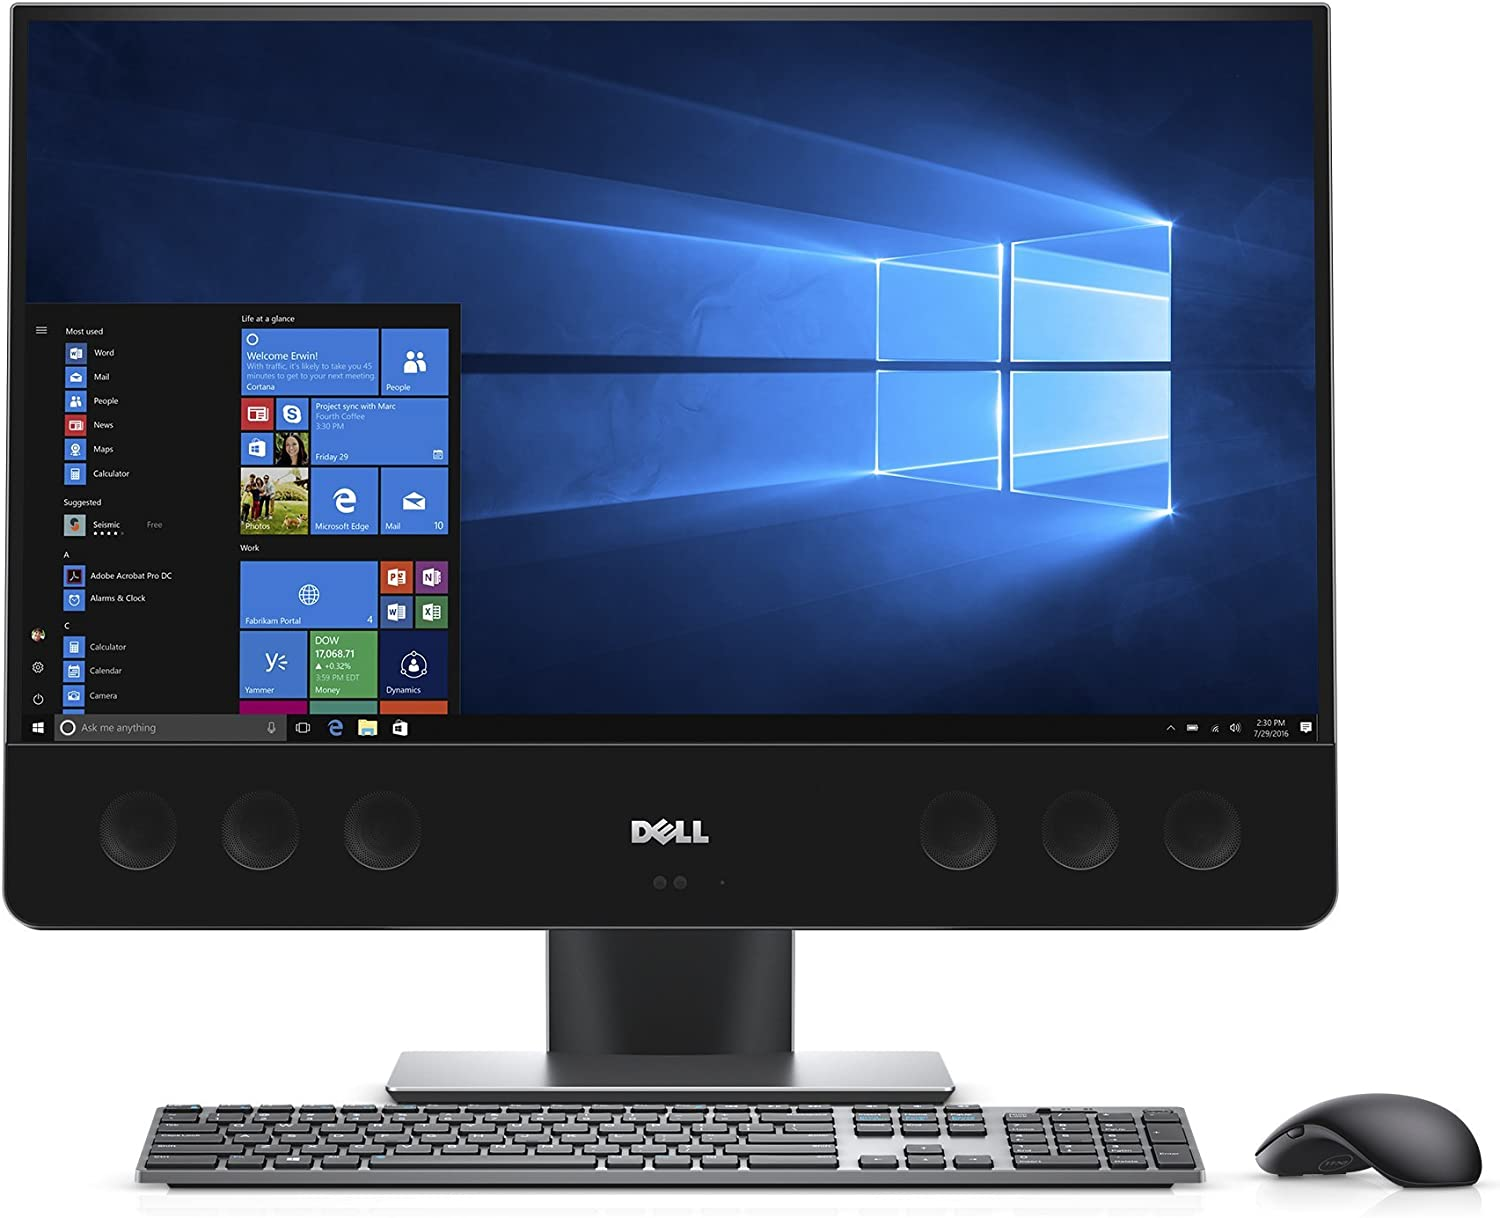 Dell XPS 2760 XPS7760-7213BLK-PUS 27-Inch All-in-One Desktop(Black) (Renewed)